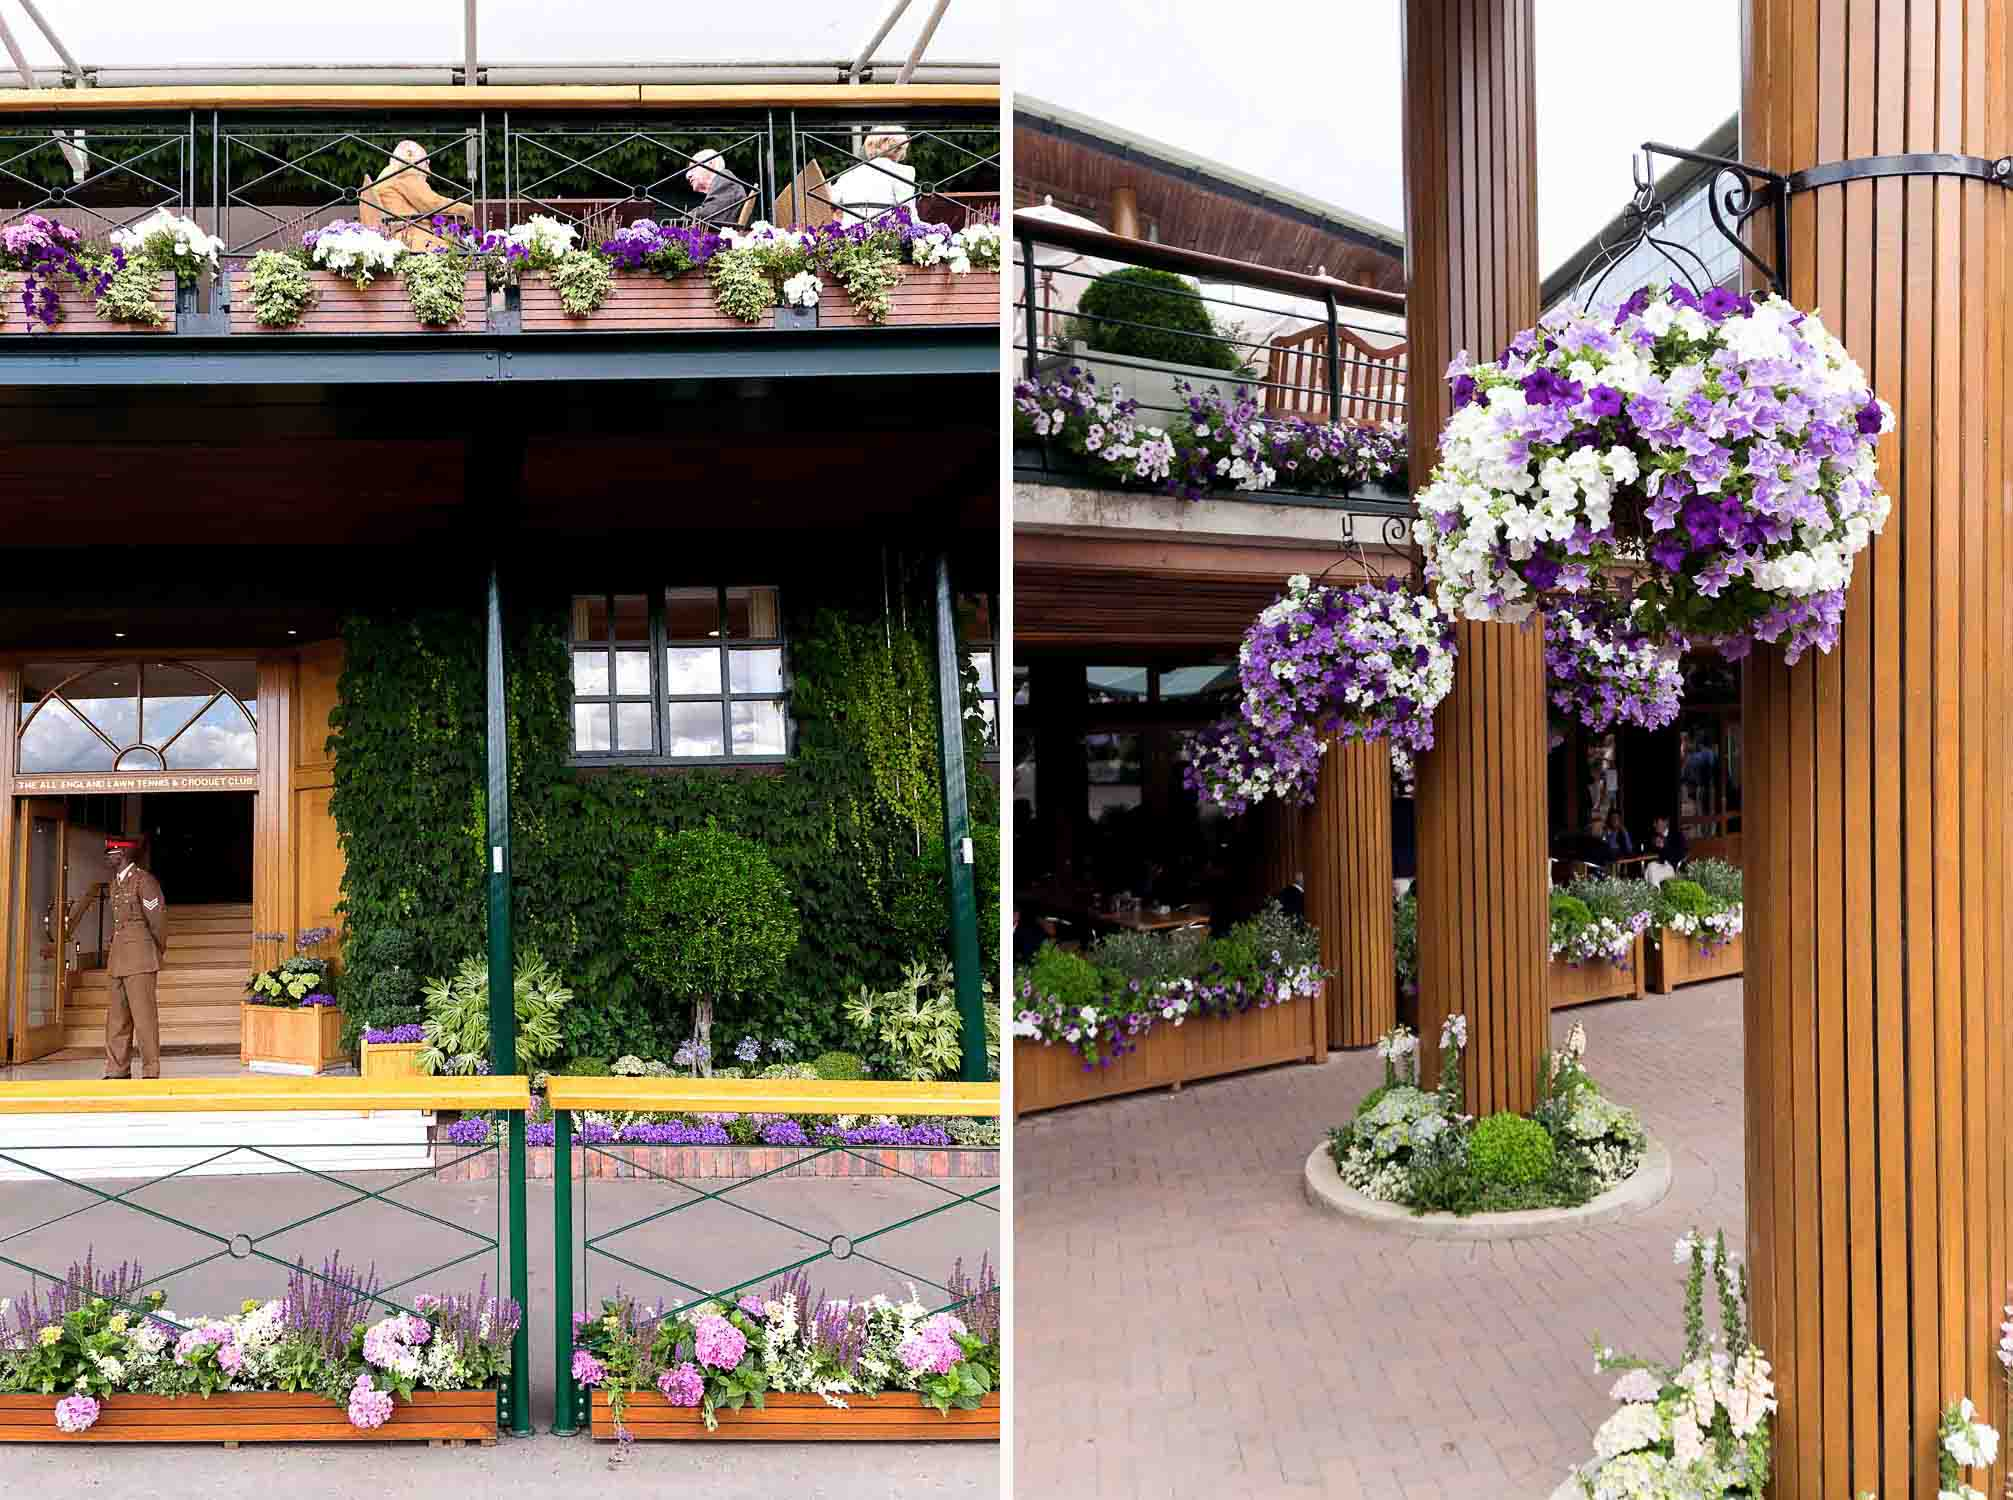 Wimbledon 2017 Tennis Championship at All England Lawn Tennis and Croquet Club